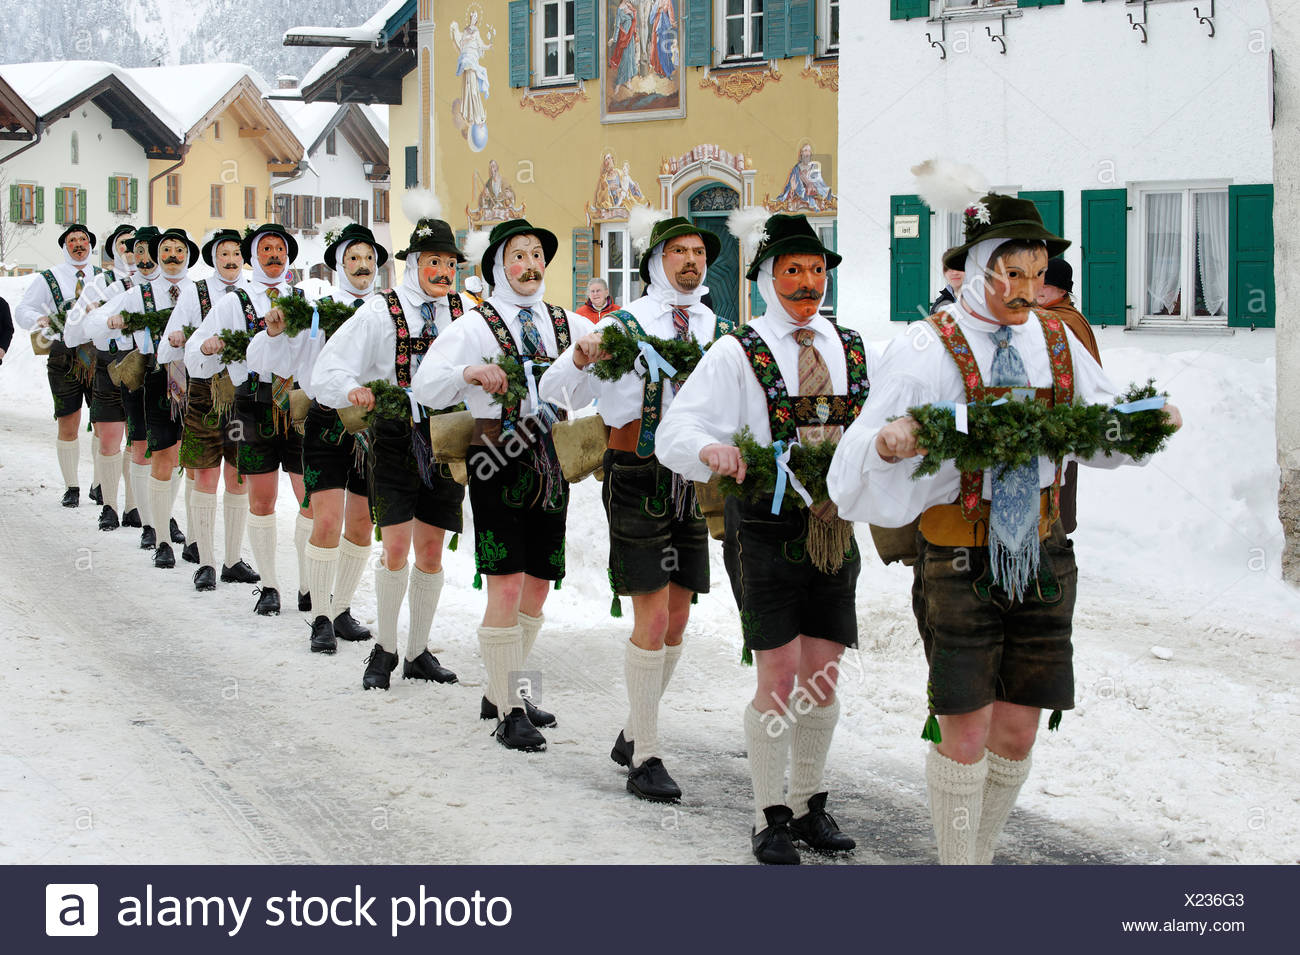 Men with bells, traditional carnival costumes, carnival parade, Maschkera, Mittenwald, Werdenfelser Land, Upper Bavaria - Stock Image